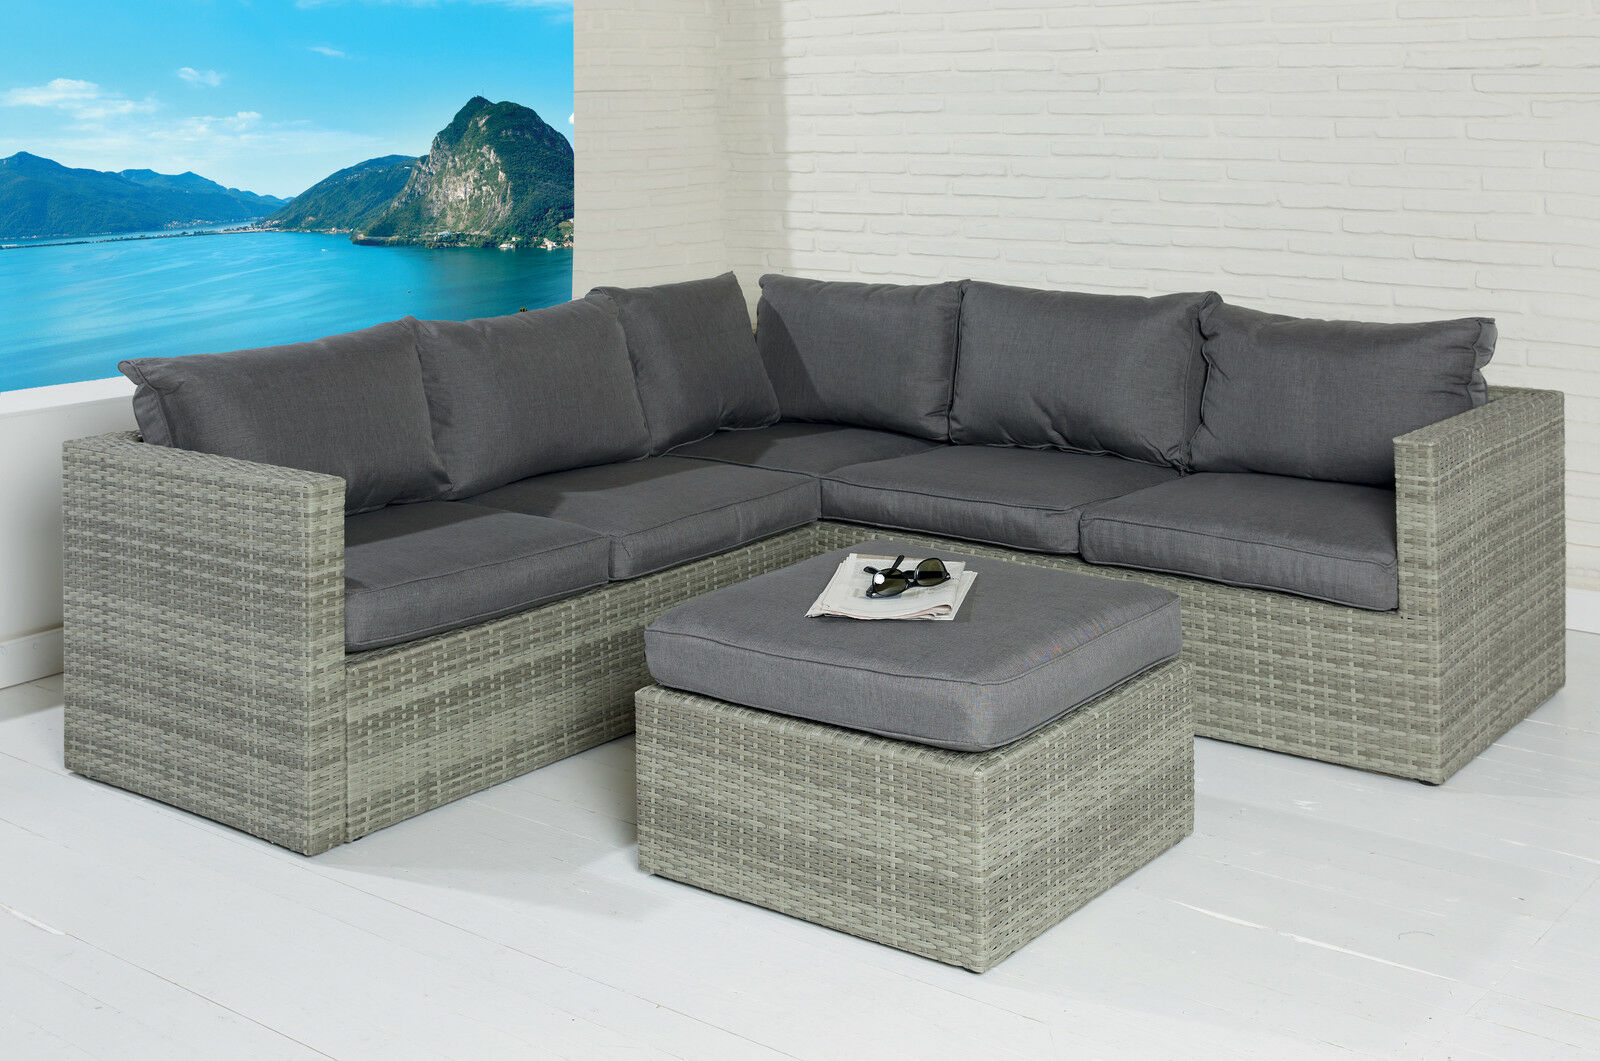 poly rattan gartenm bel set loungem bel garnitur sitzgruppe gartenstuhl gruppe eur 599 00. Black Bedroom Furniture Sets. Home Design Ideas